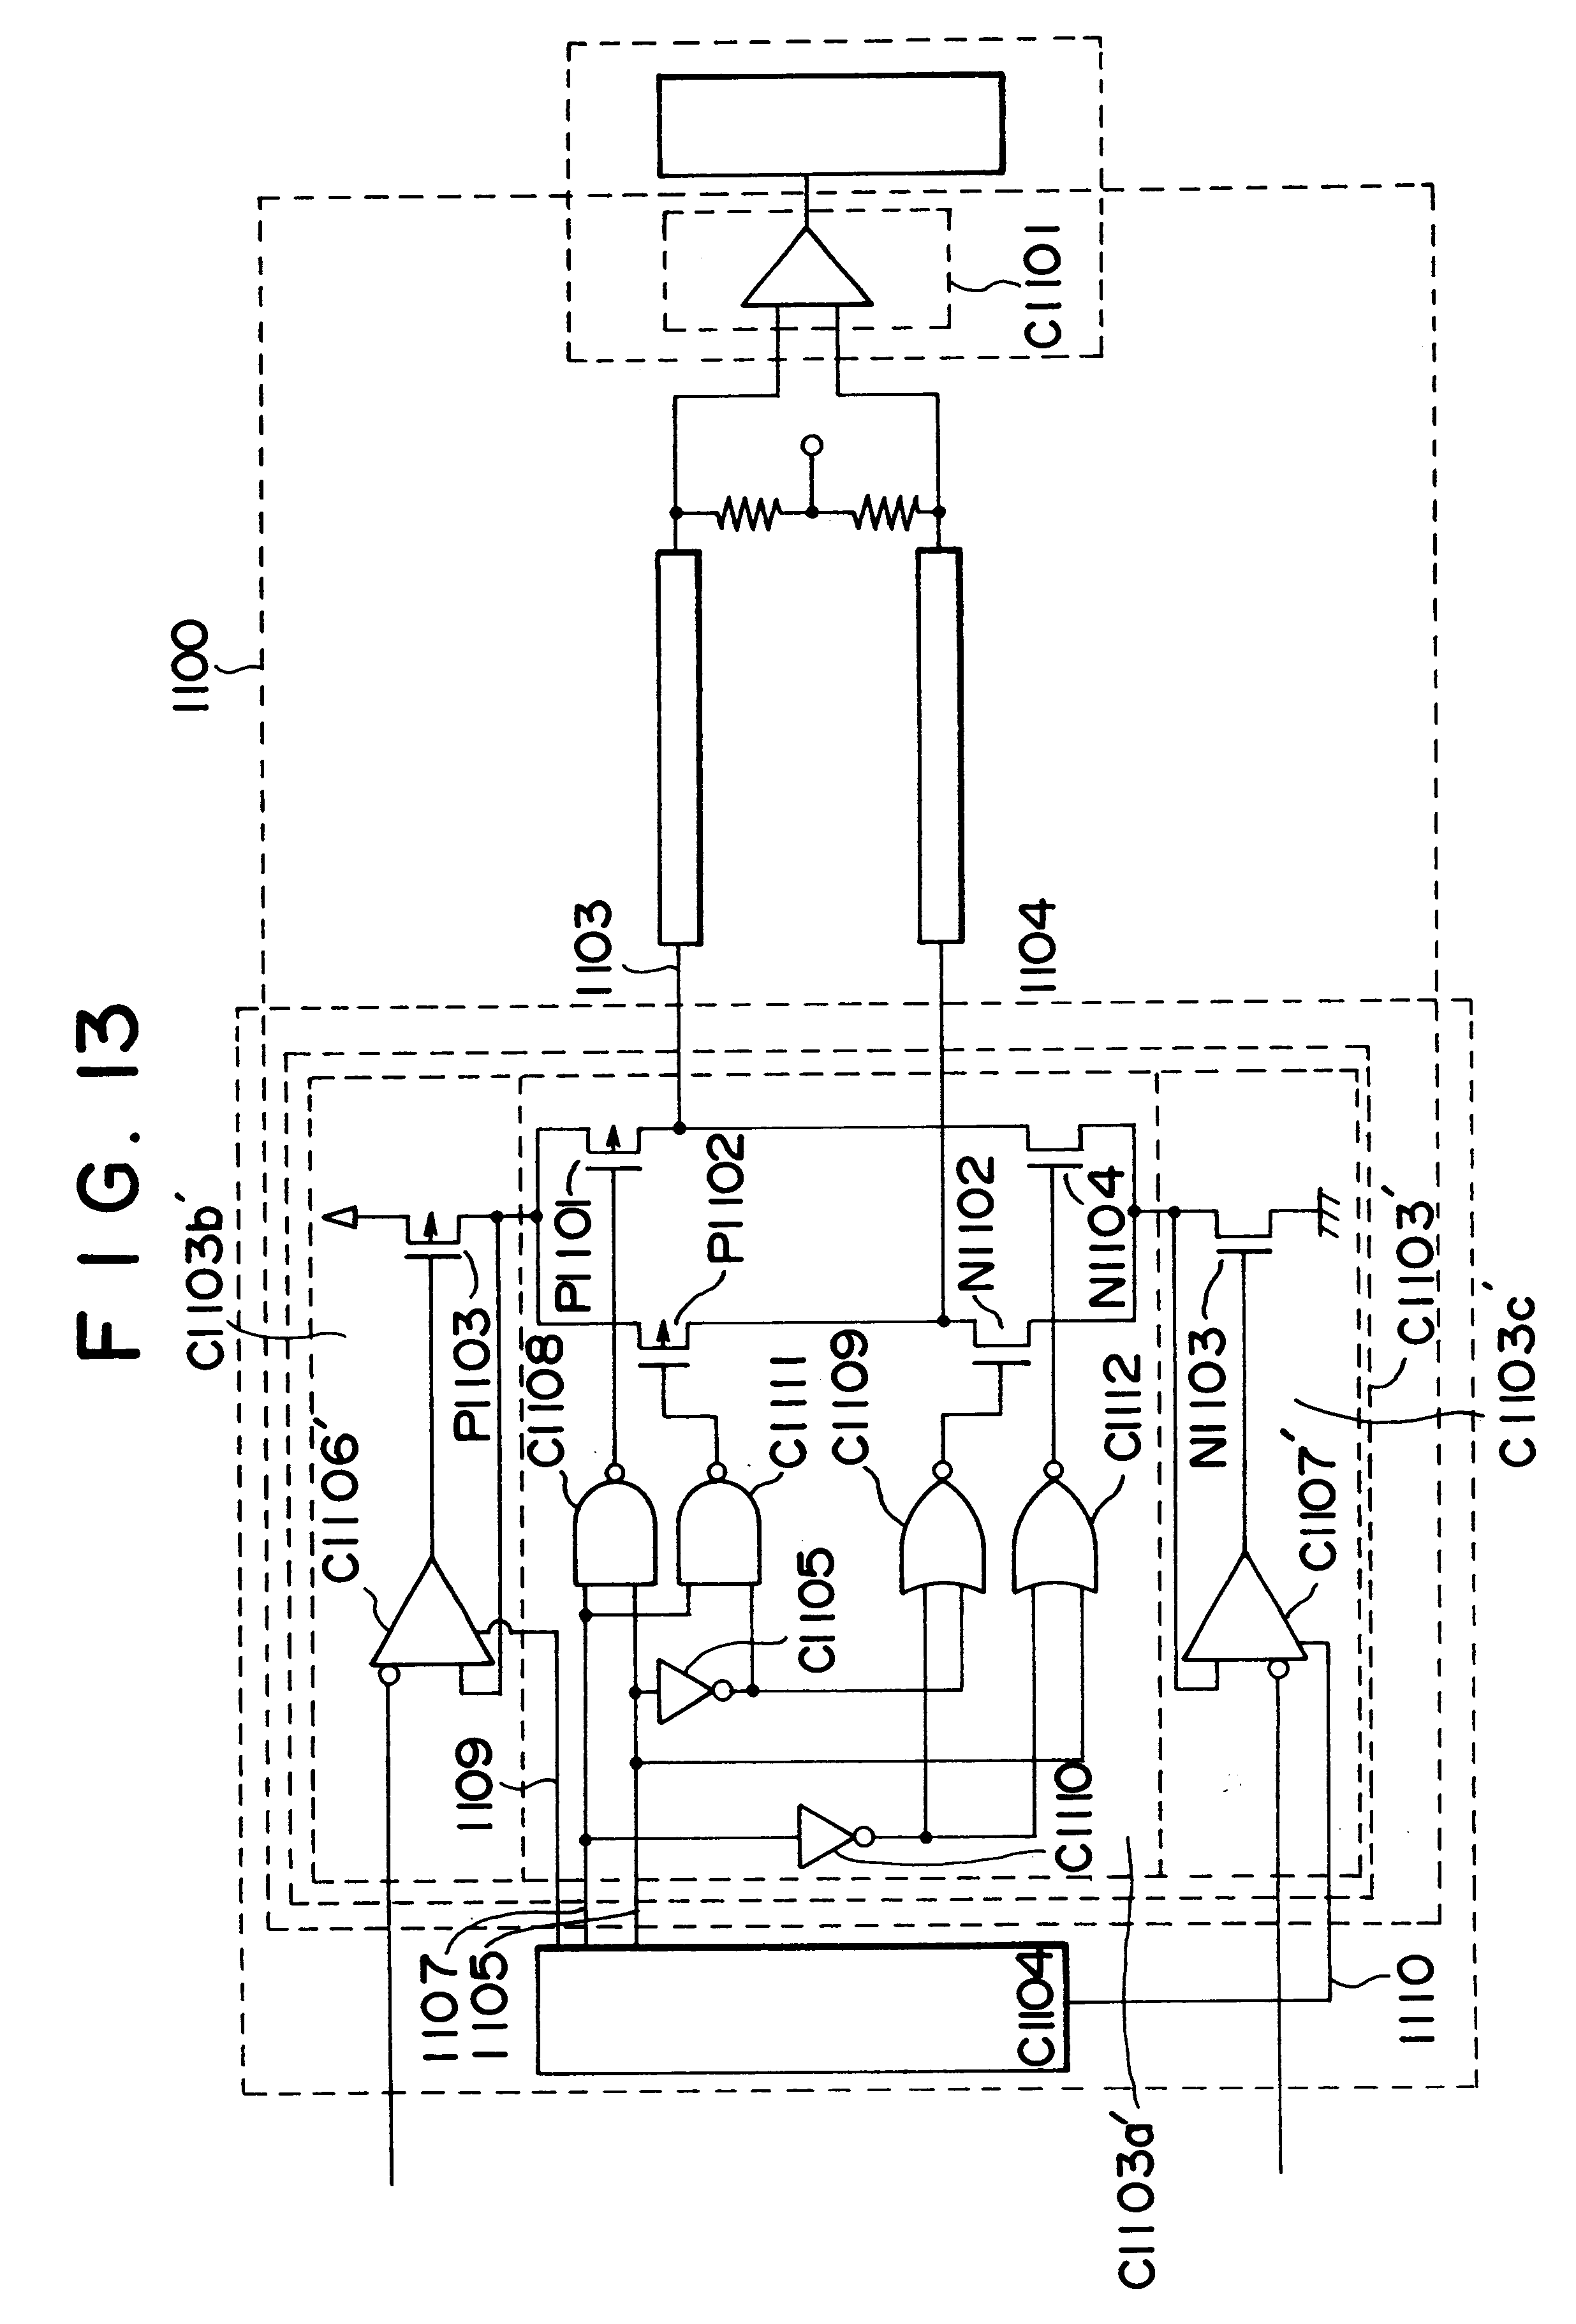 Patent Us6577164 Output Circuit For A Transmission System Google Nand Gate Diagram Powersupplycircuit Drawing